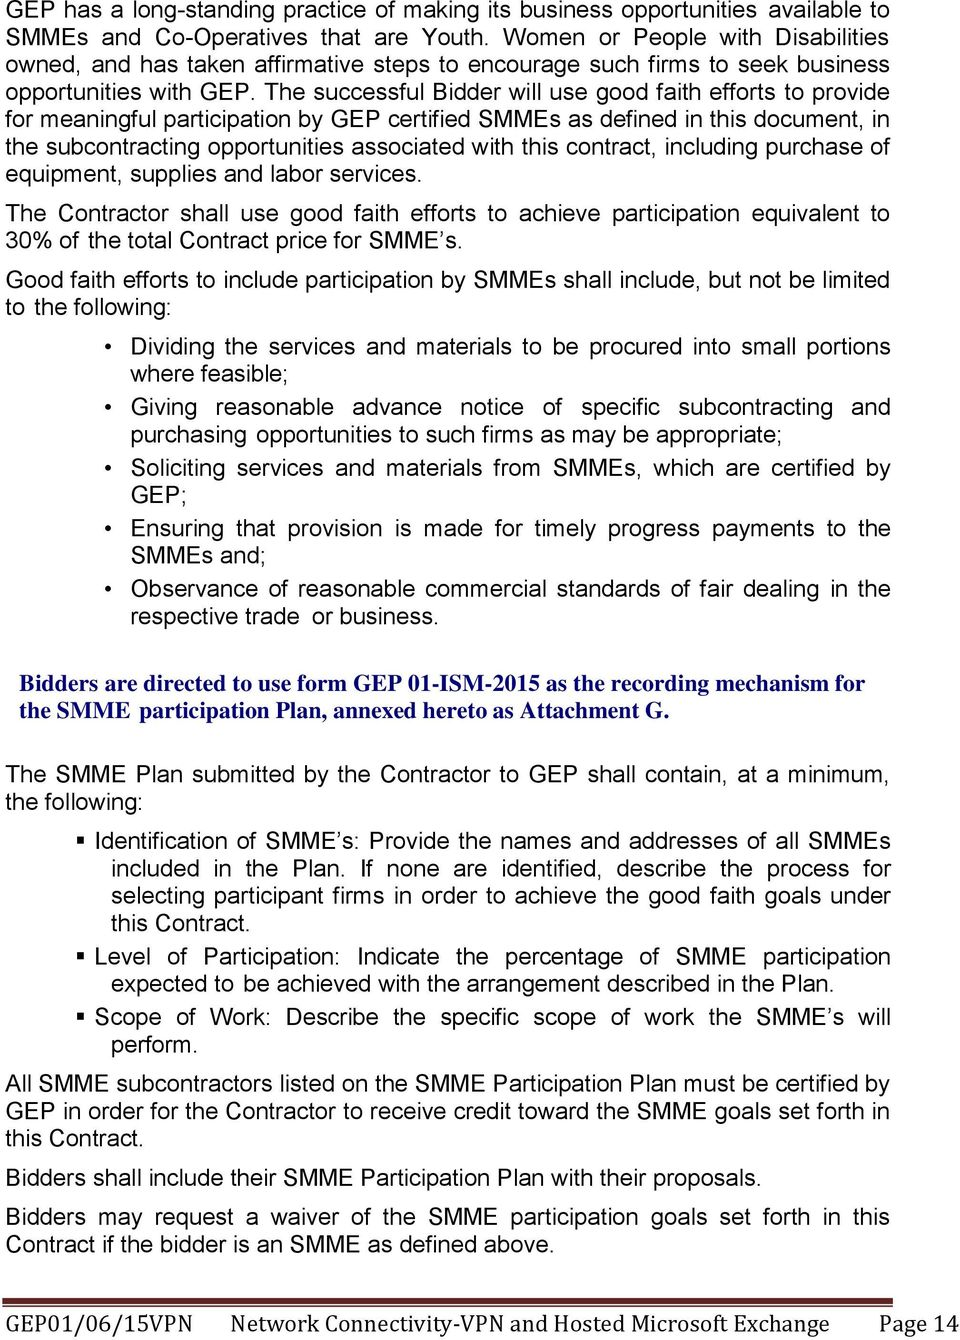 The successful Bidder will use good faith efforts to provide for meaningful participation by GEP certified SMMEs as defined in this document, in the subcontracting opportunities associated with this